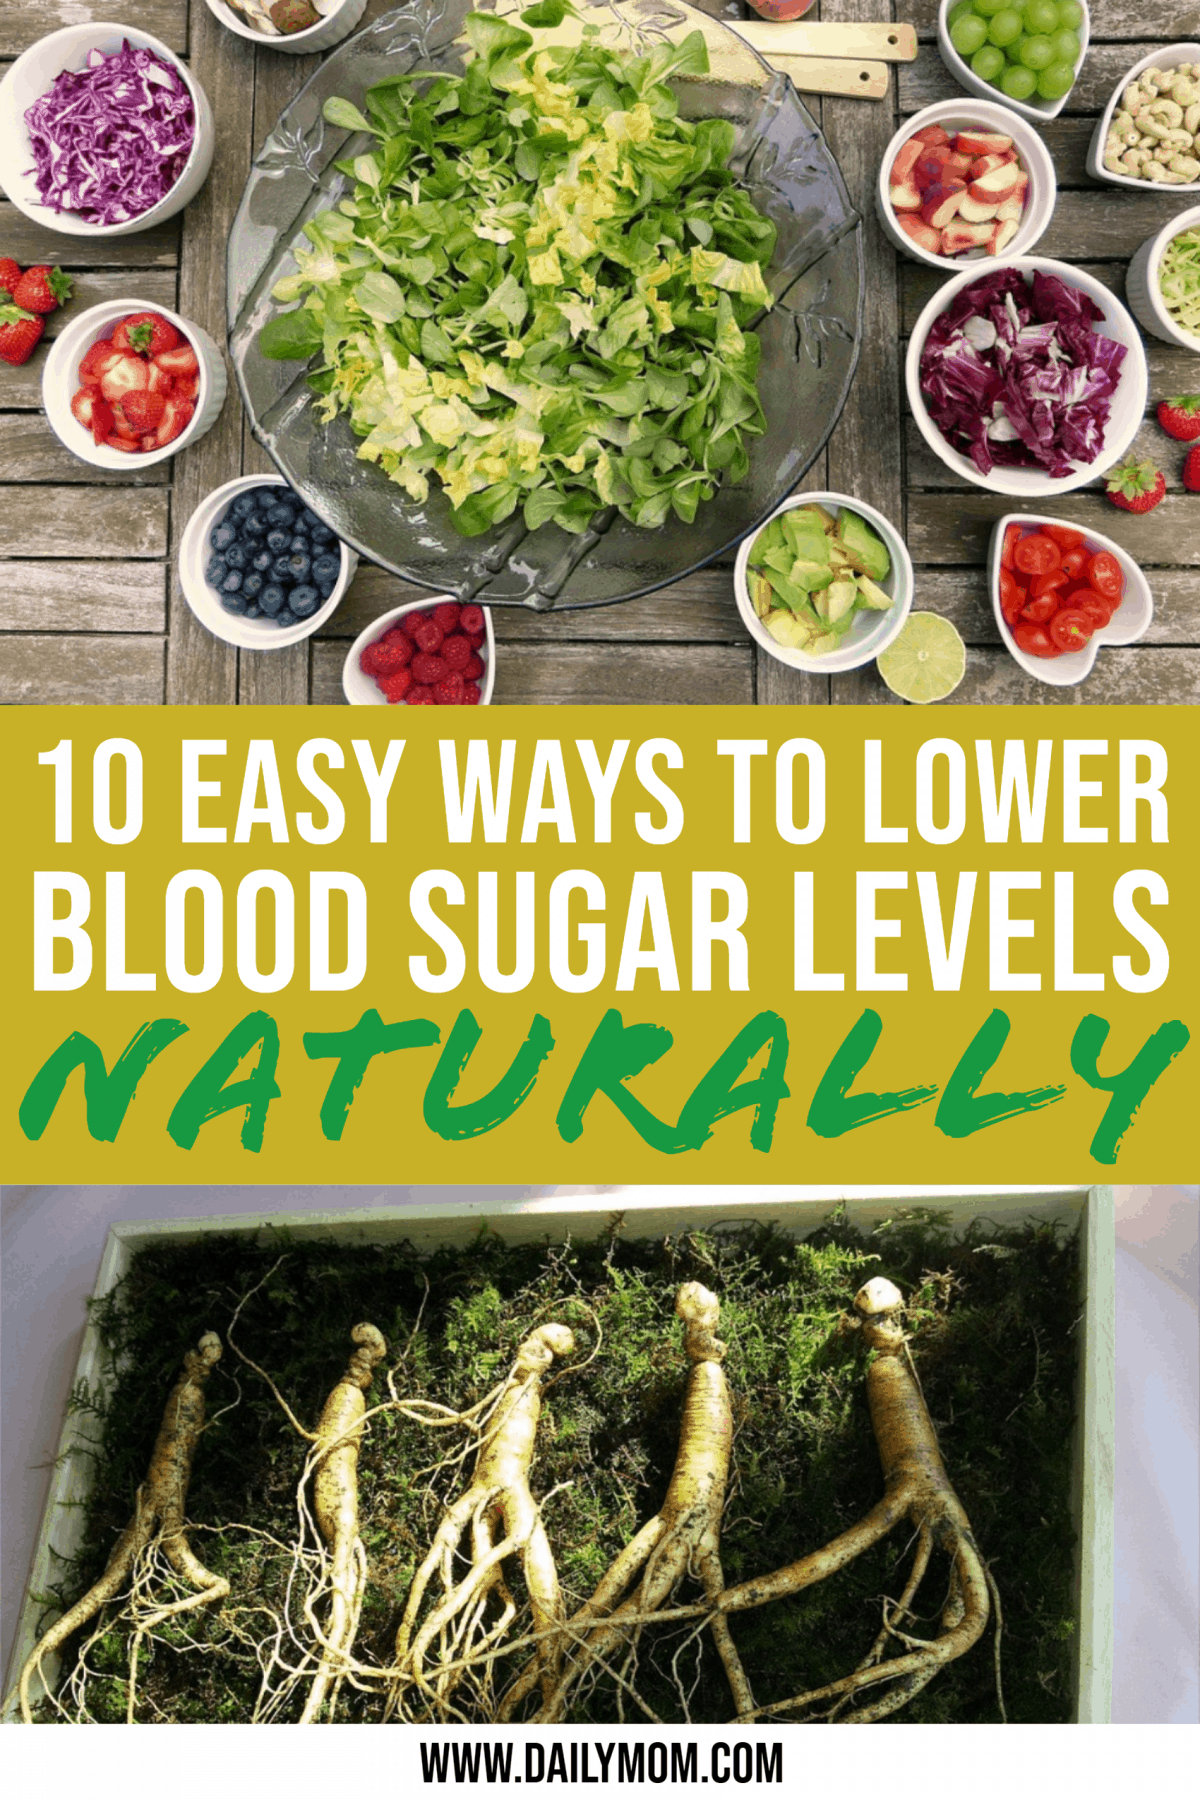 10 Easy Ways To Lower Blood Sugar Levels Naturally